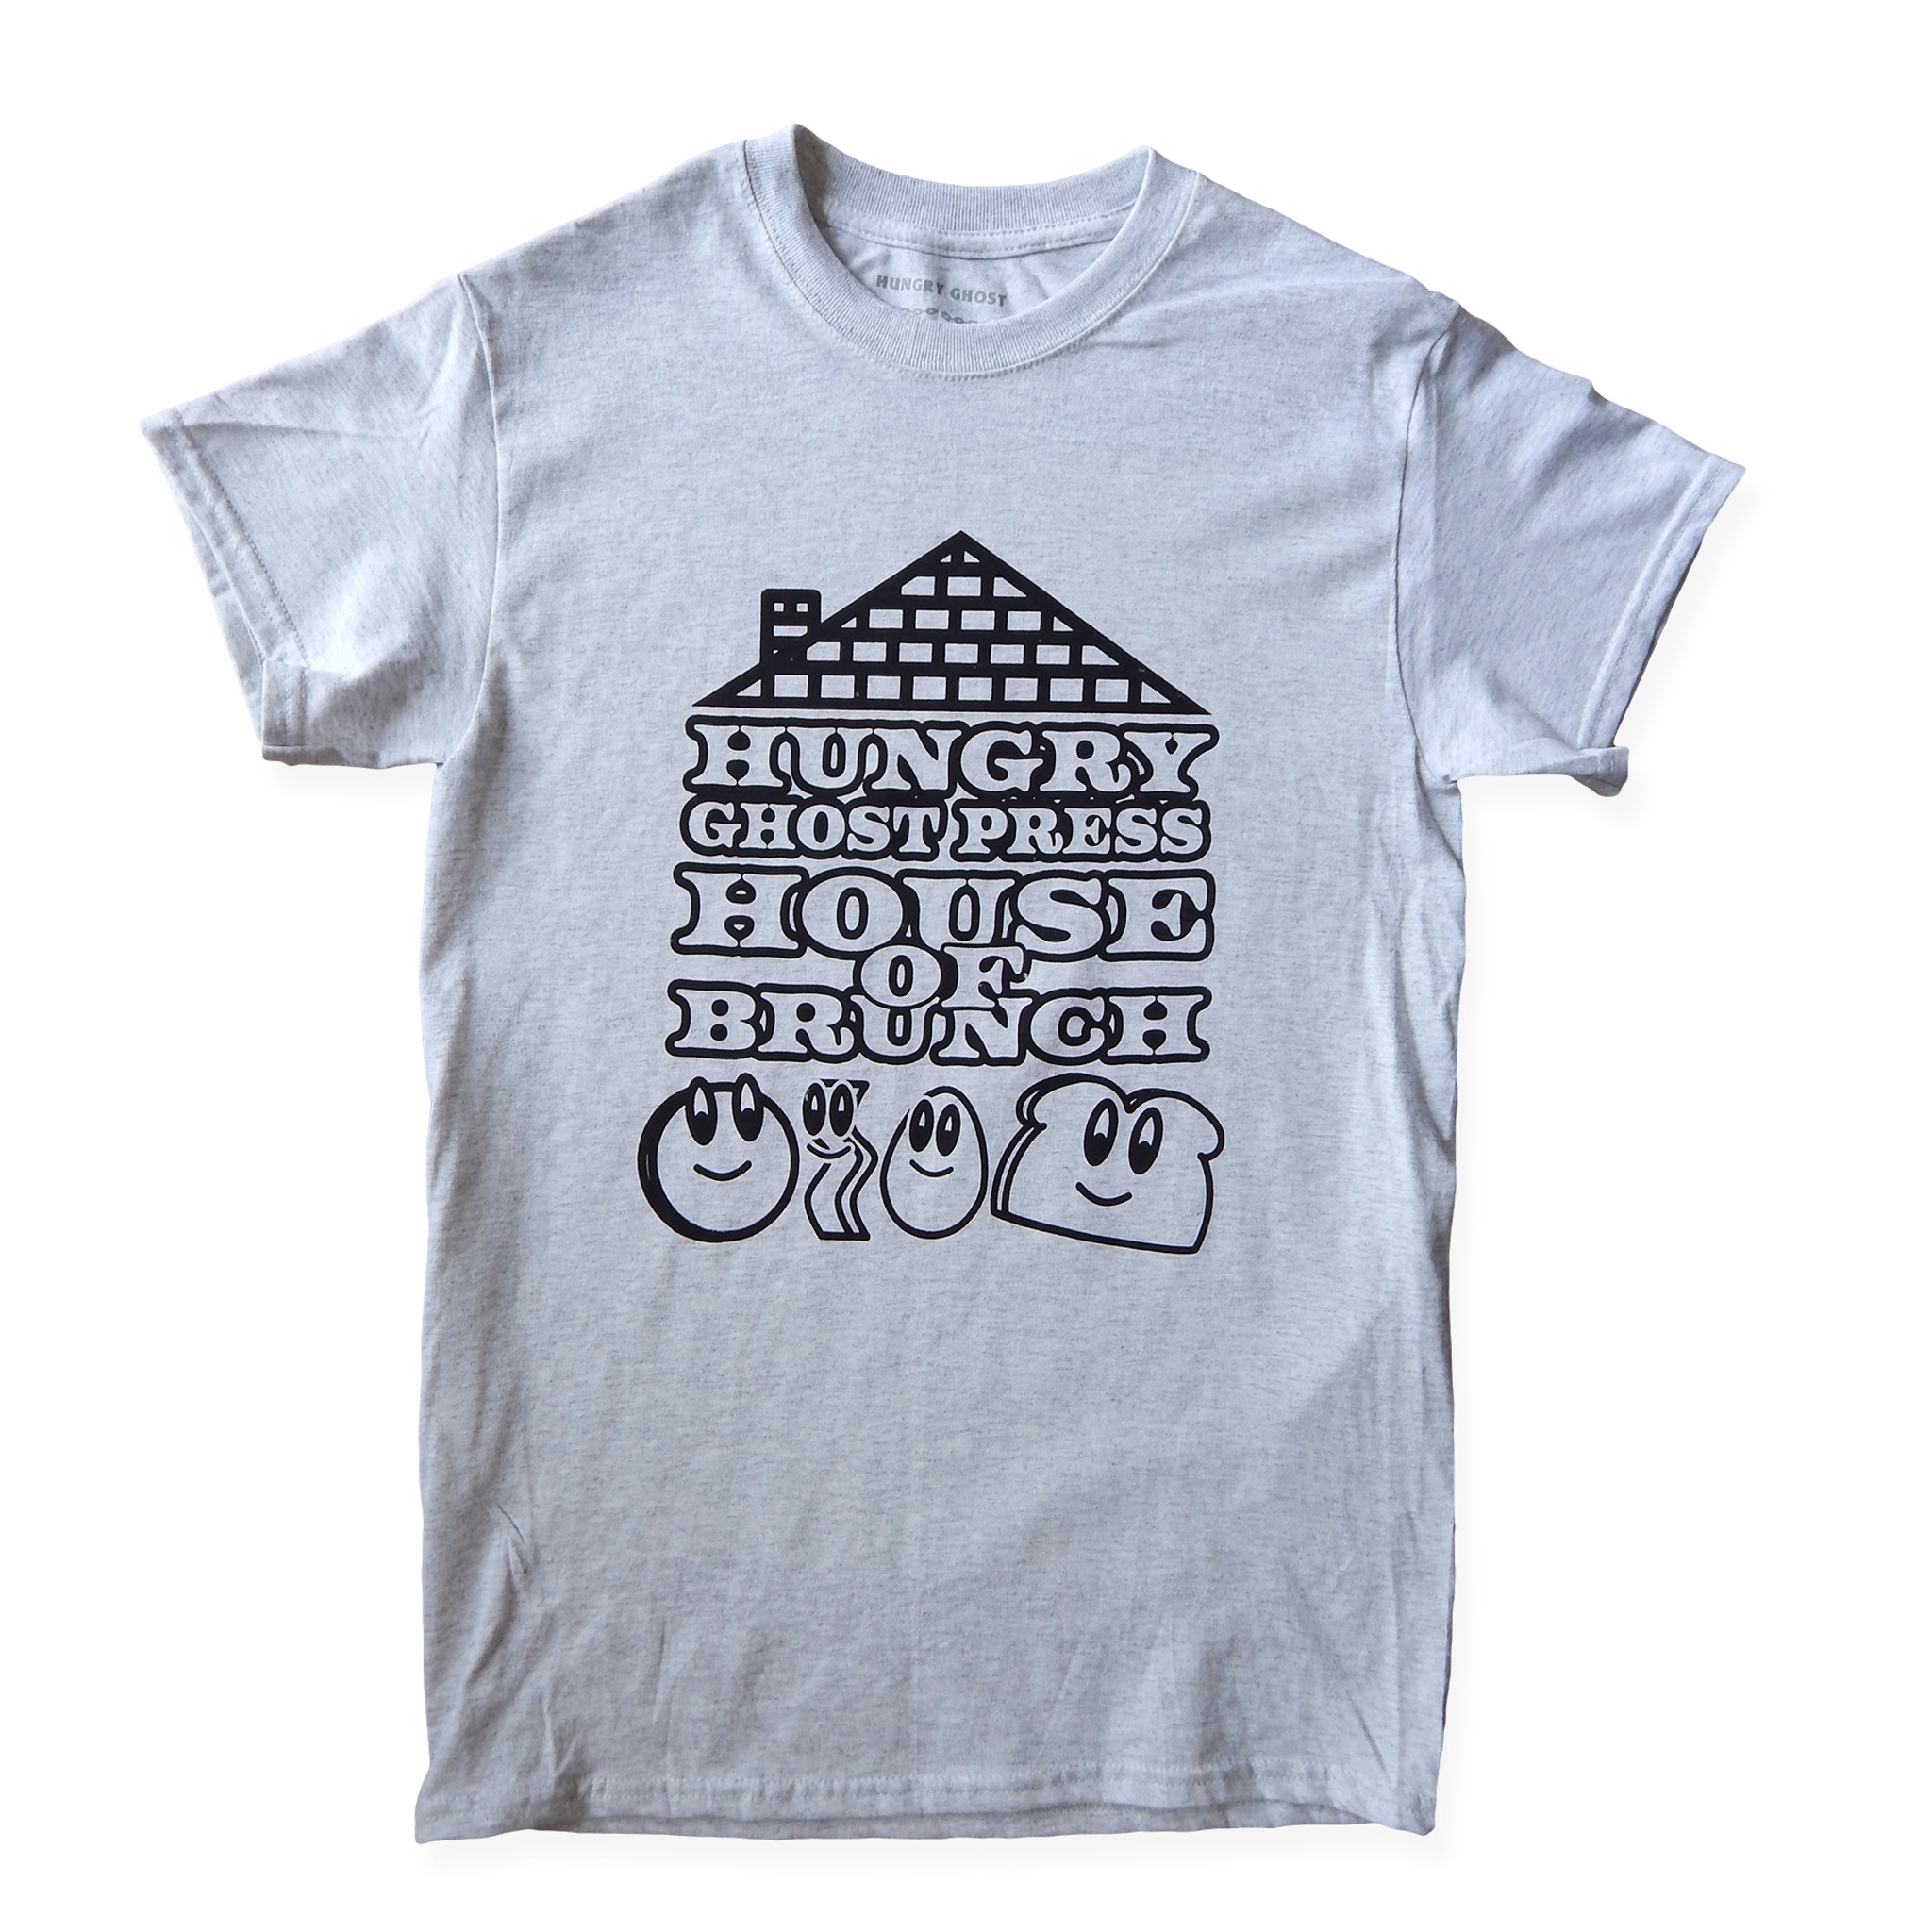 House of Brunch Tee